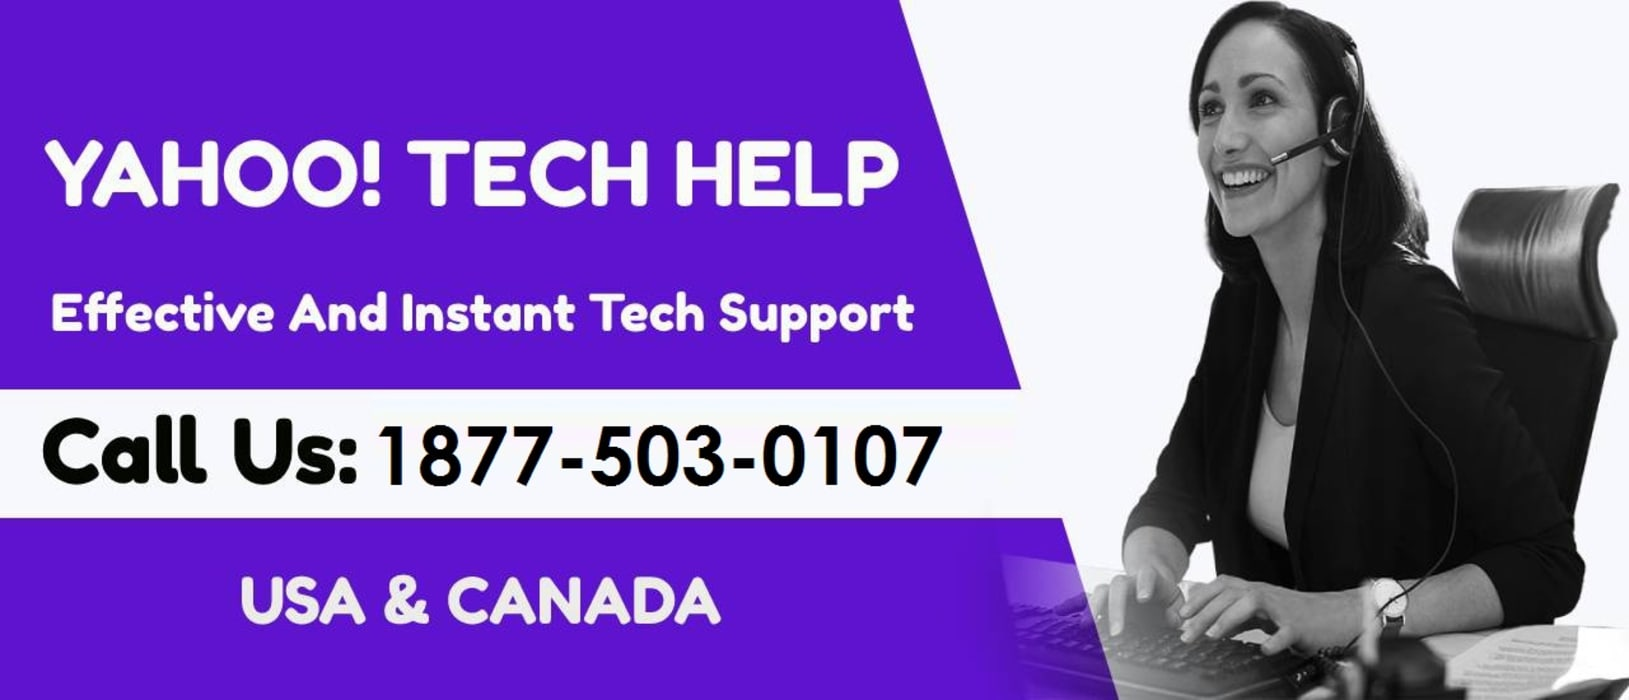 Yahoo Mail Tech Support Number 1877-503-0107 Yahoo Mail Support Number 1877-503-0107 庭院 塑膠 Metallic/Silver